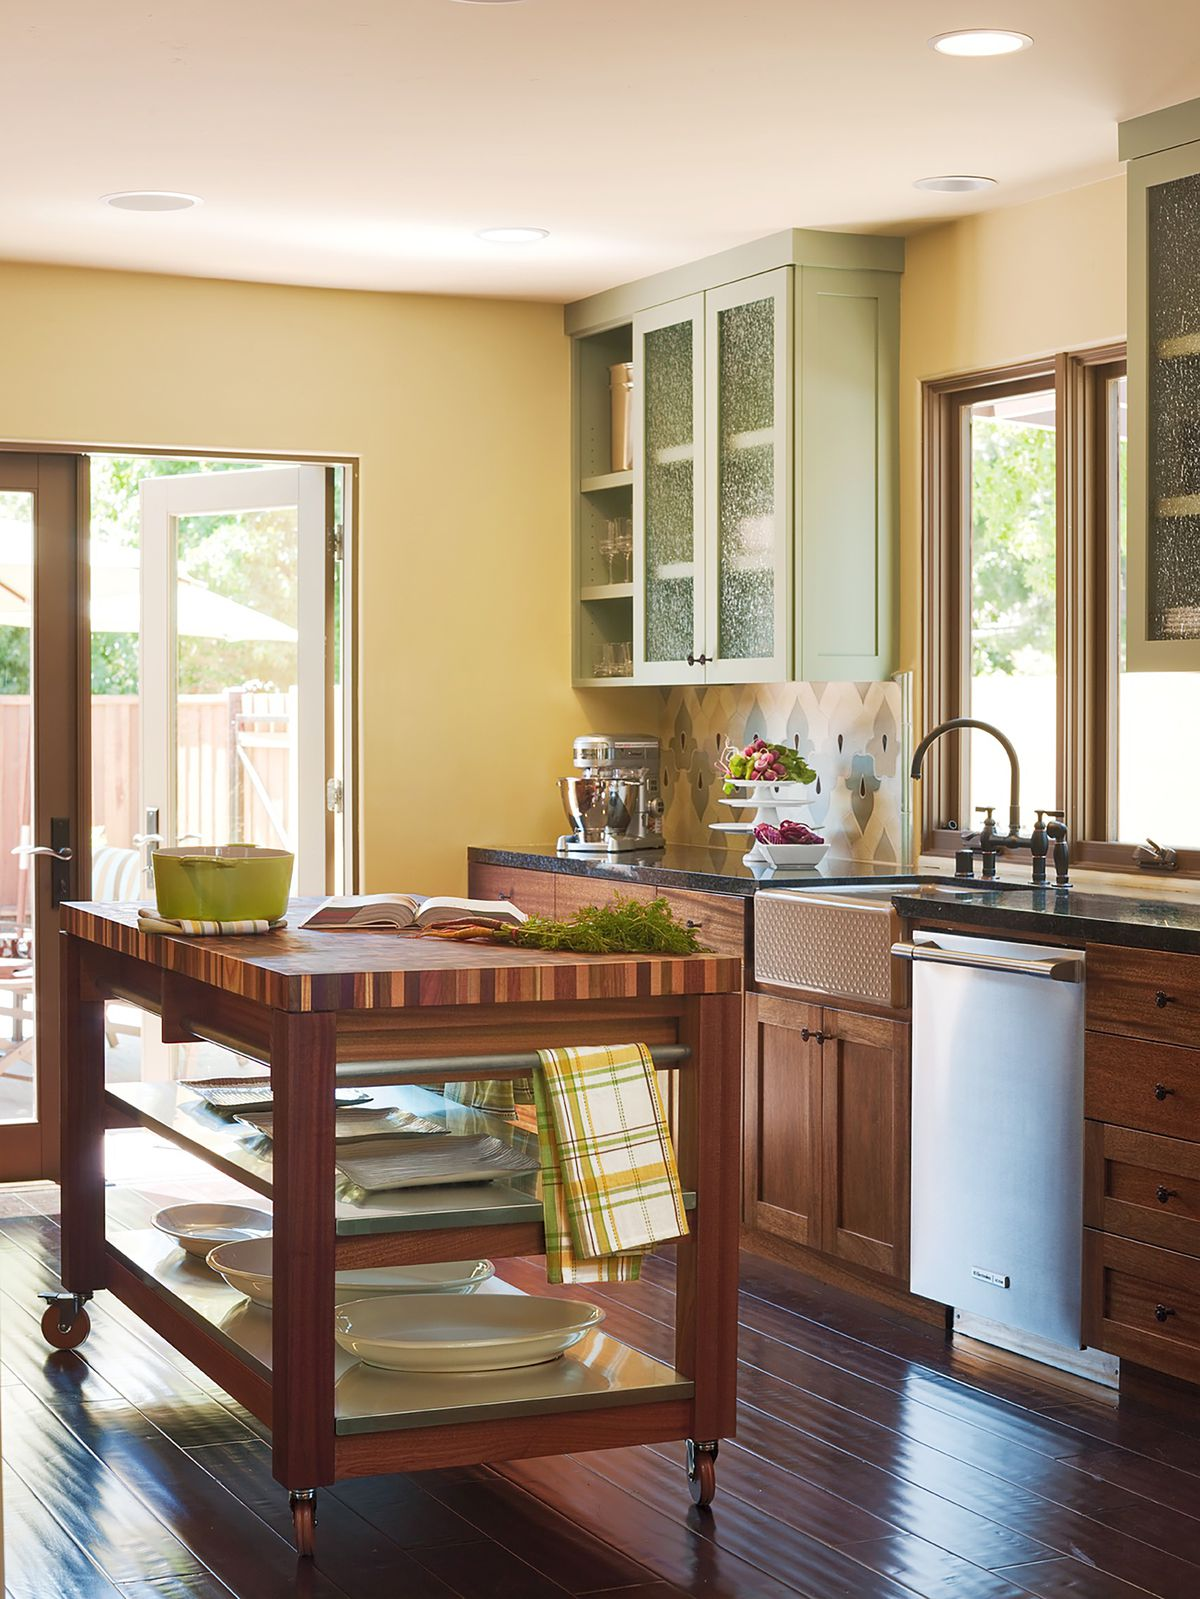 Organic classic style wood countertop in kitchen.